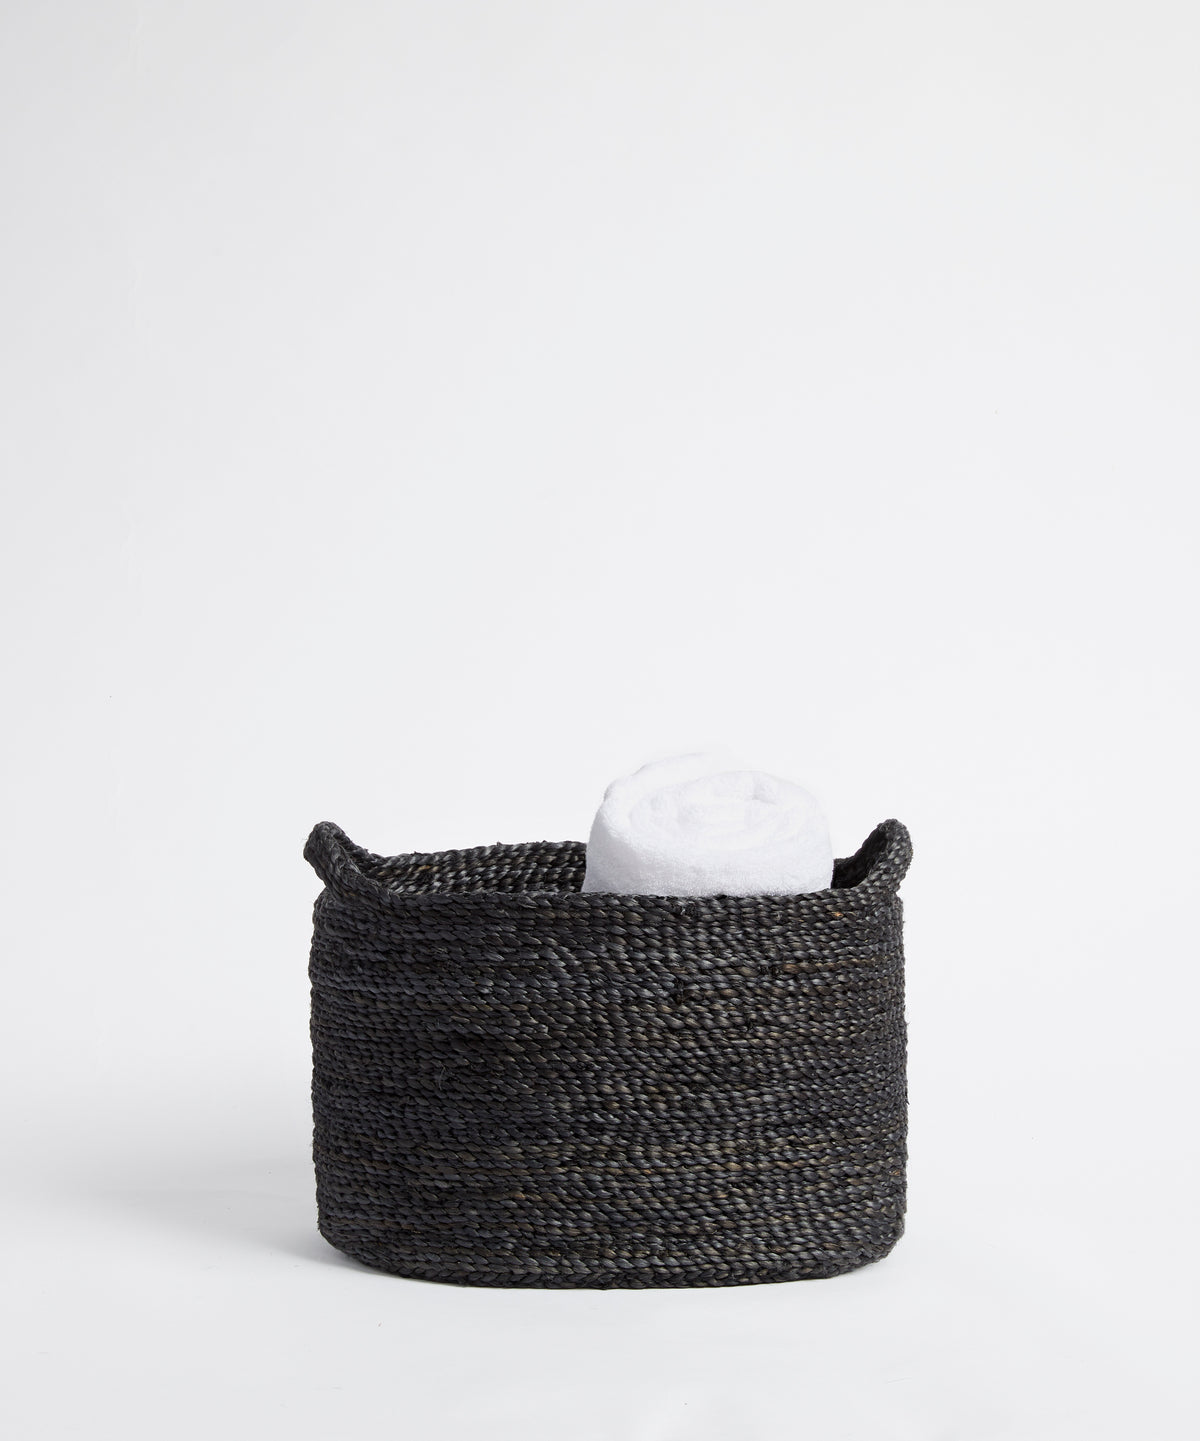 Small Charcoal Storage Basket with Handles